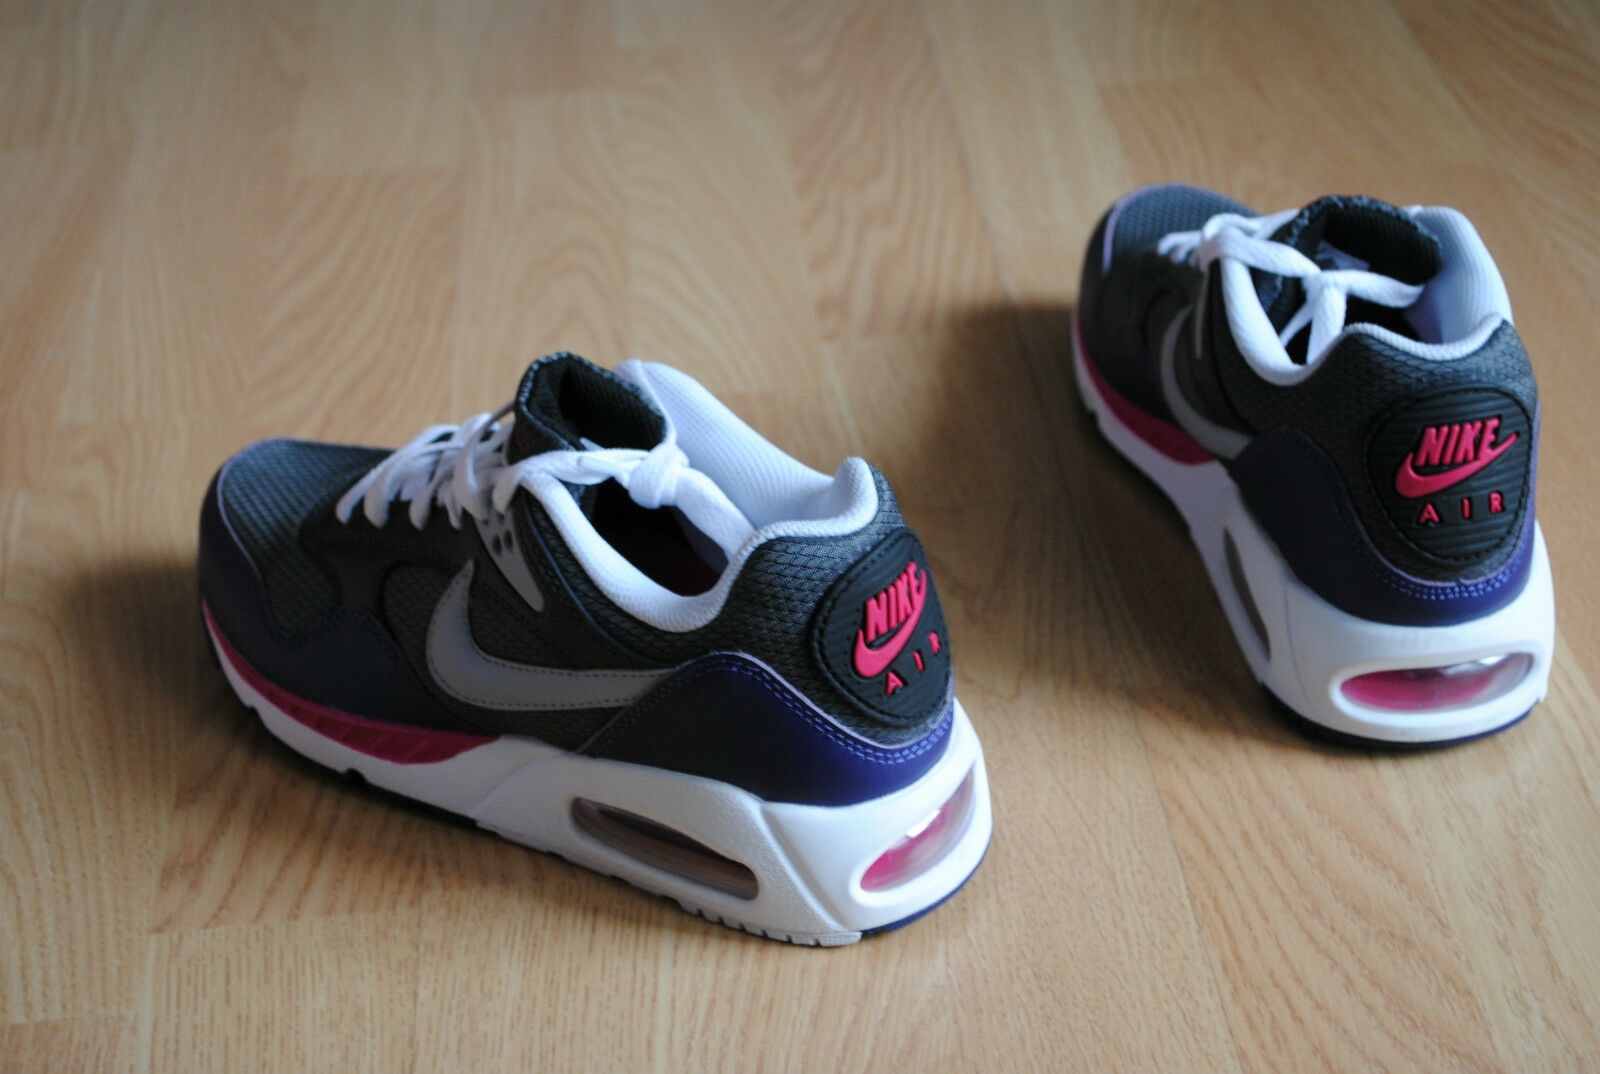 Wmns NIKE Air Max Correlate 38  cOmManD 90 claSsic fReE 1 skyline 90 cOmManD bW light 4bc122